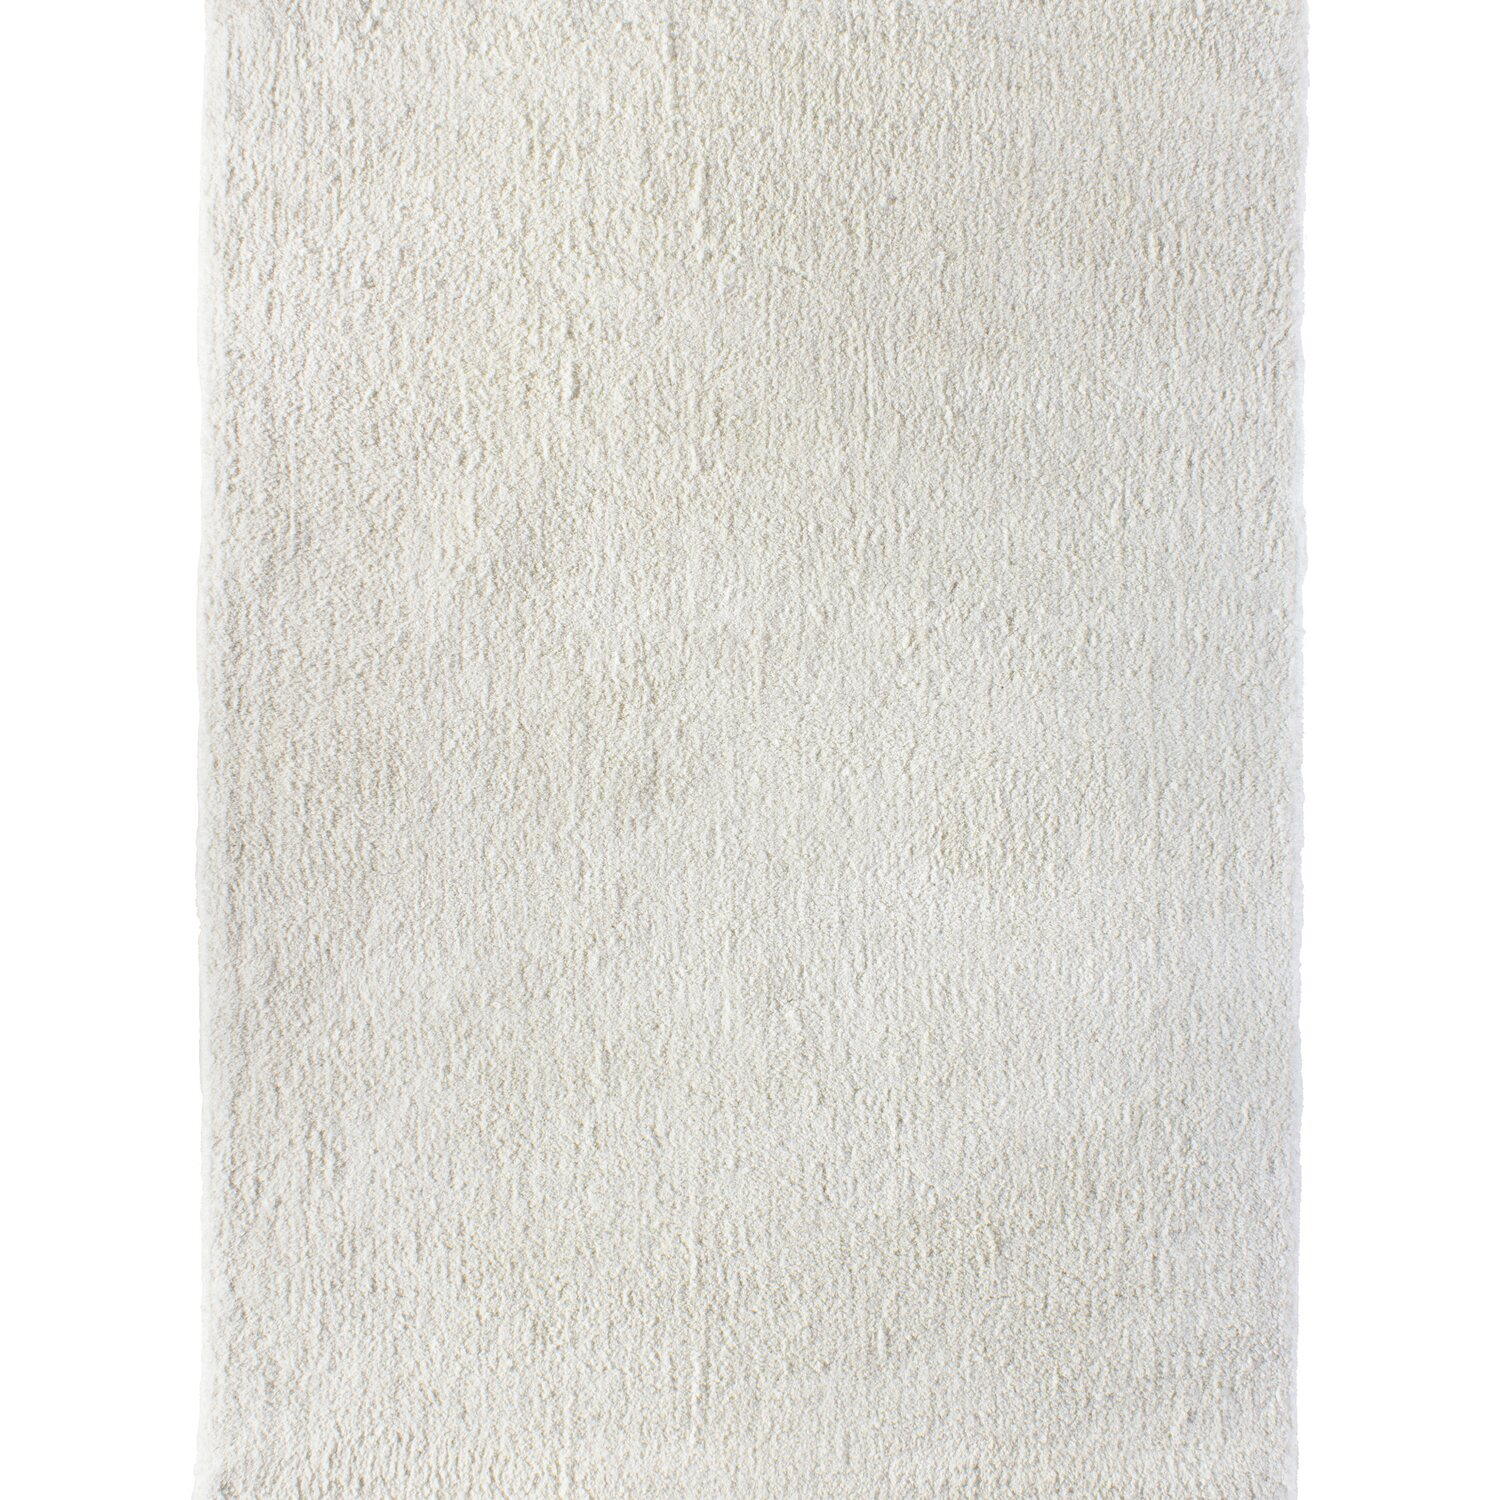 bb home passion Barbara Becker Teppich Touch 70 cm x 140 cm Creme